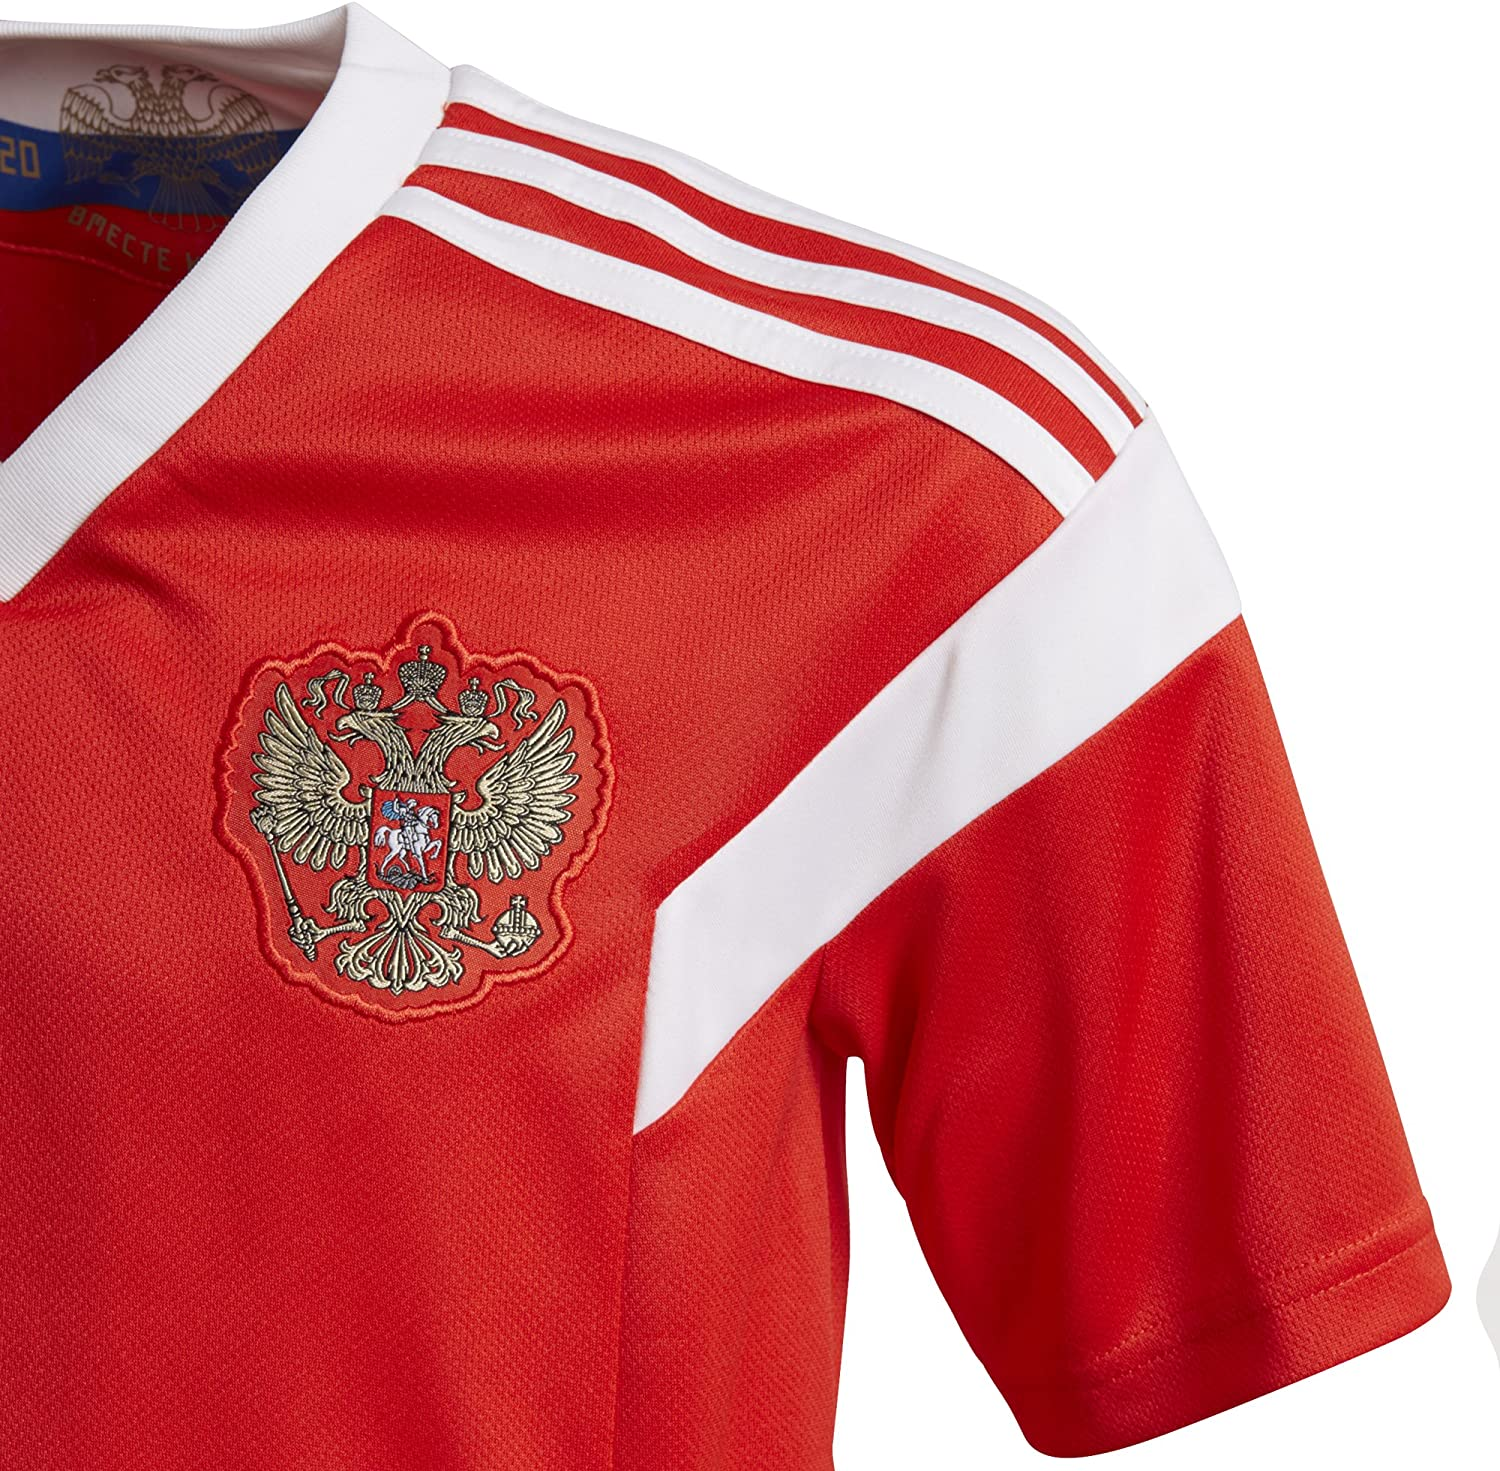 Amazon.com: adidas Kid 's Rfu Rusia Home Soccer Jersey ...